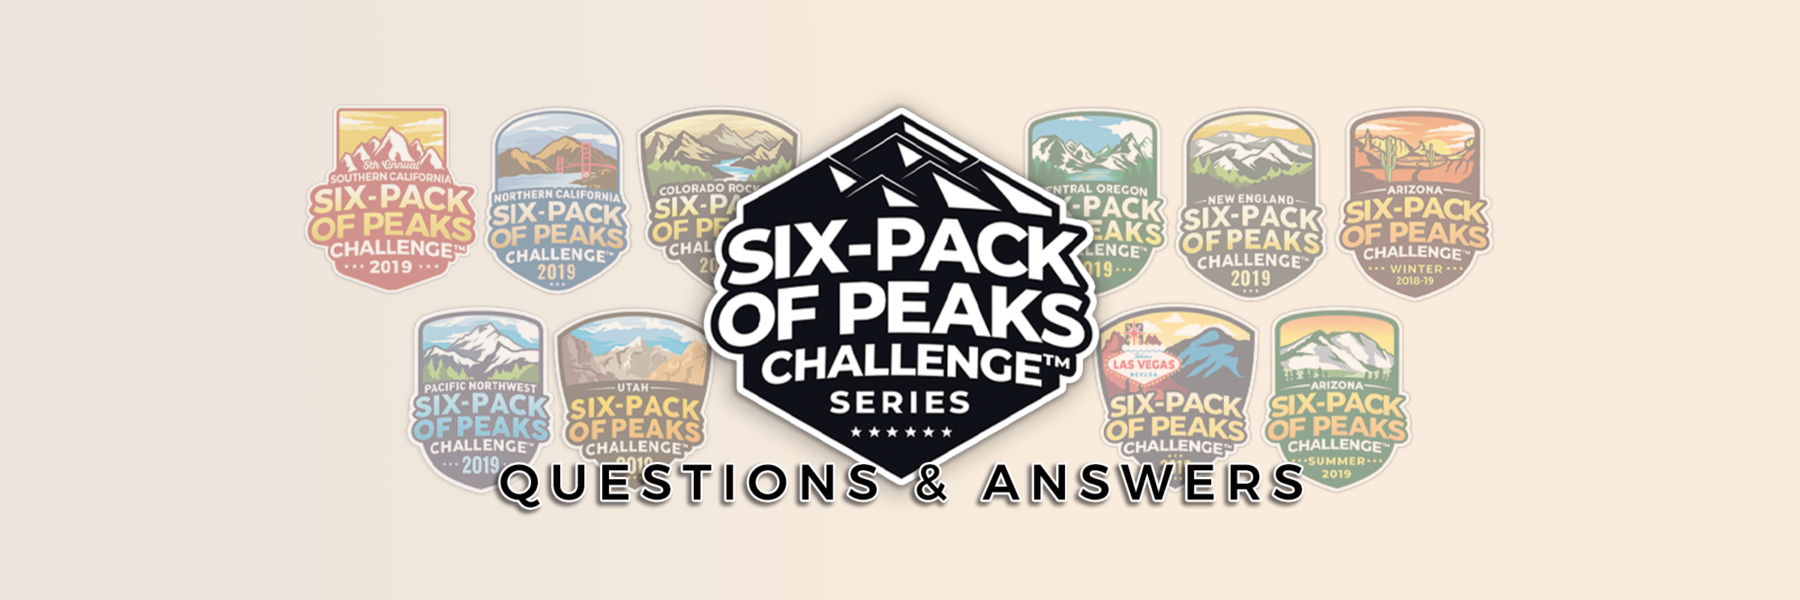 Six-Pack of Peaks Questions & Answers Discussion Forum